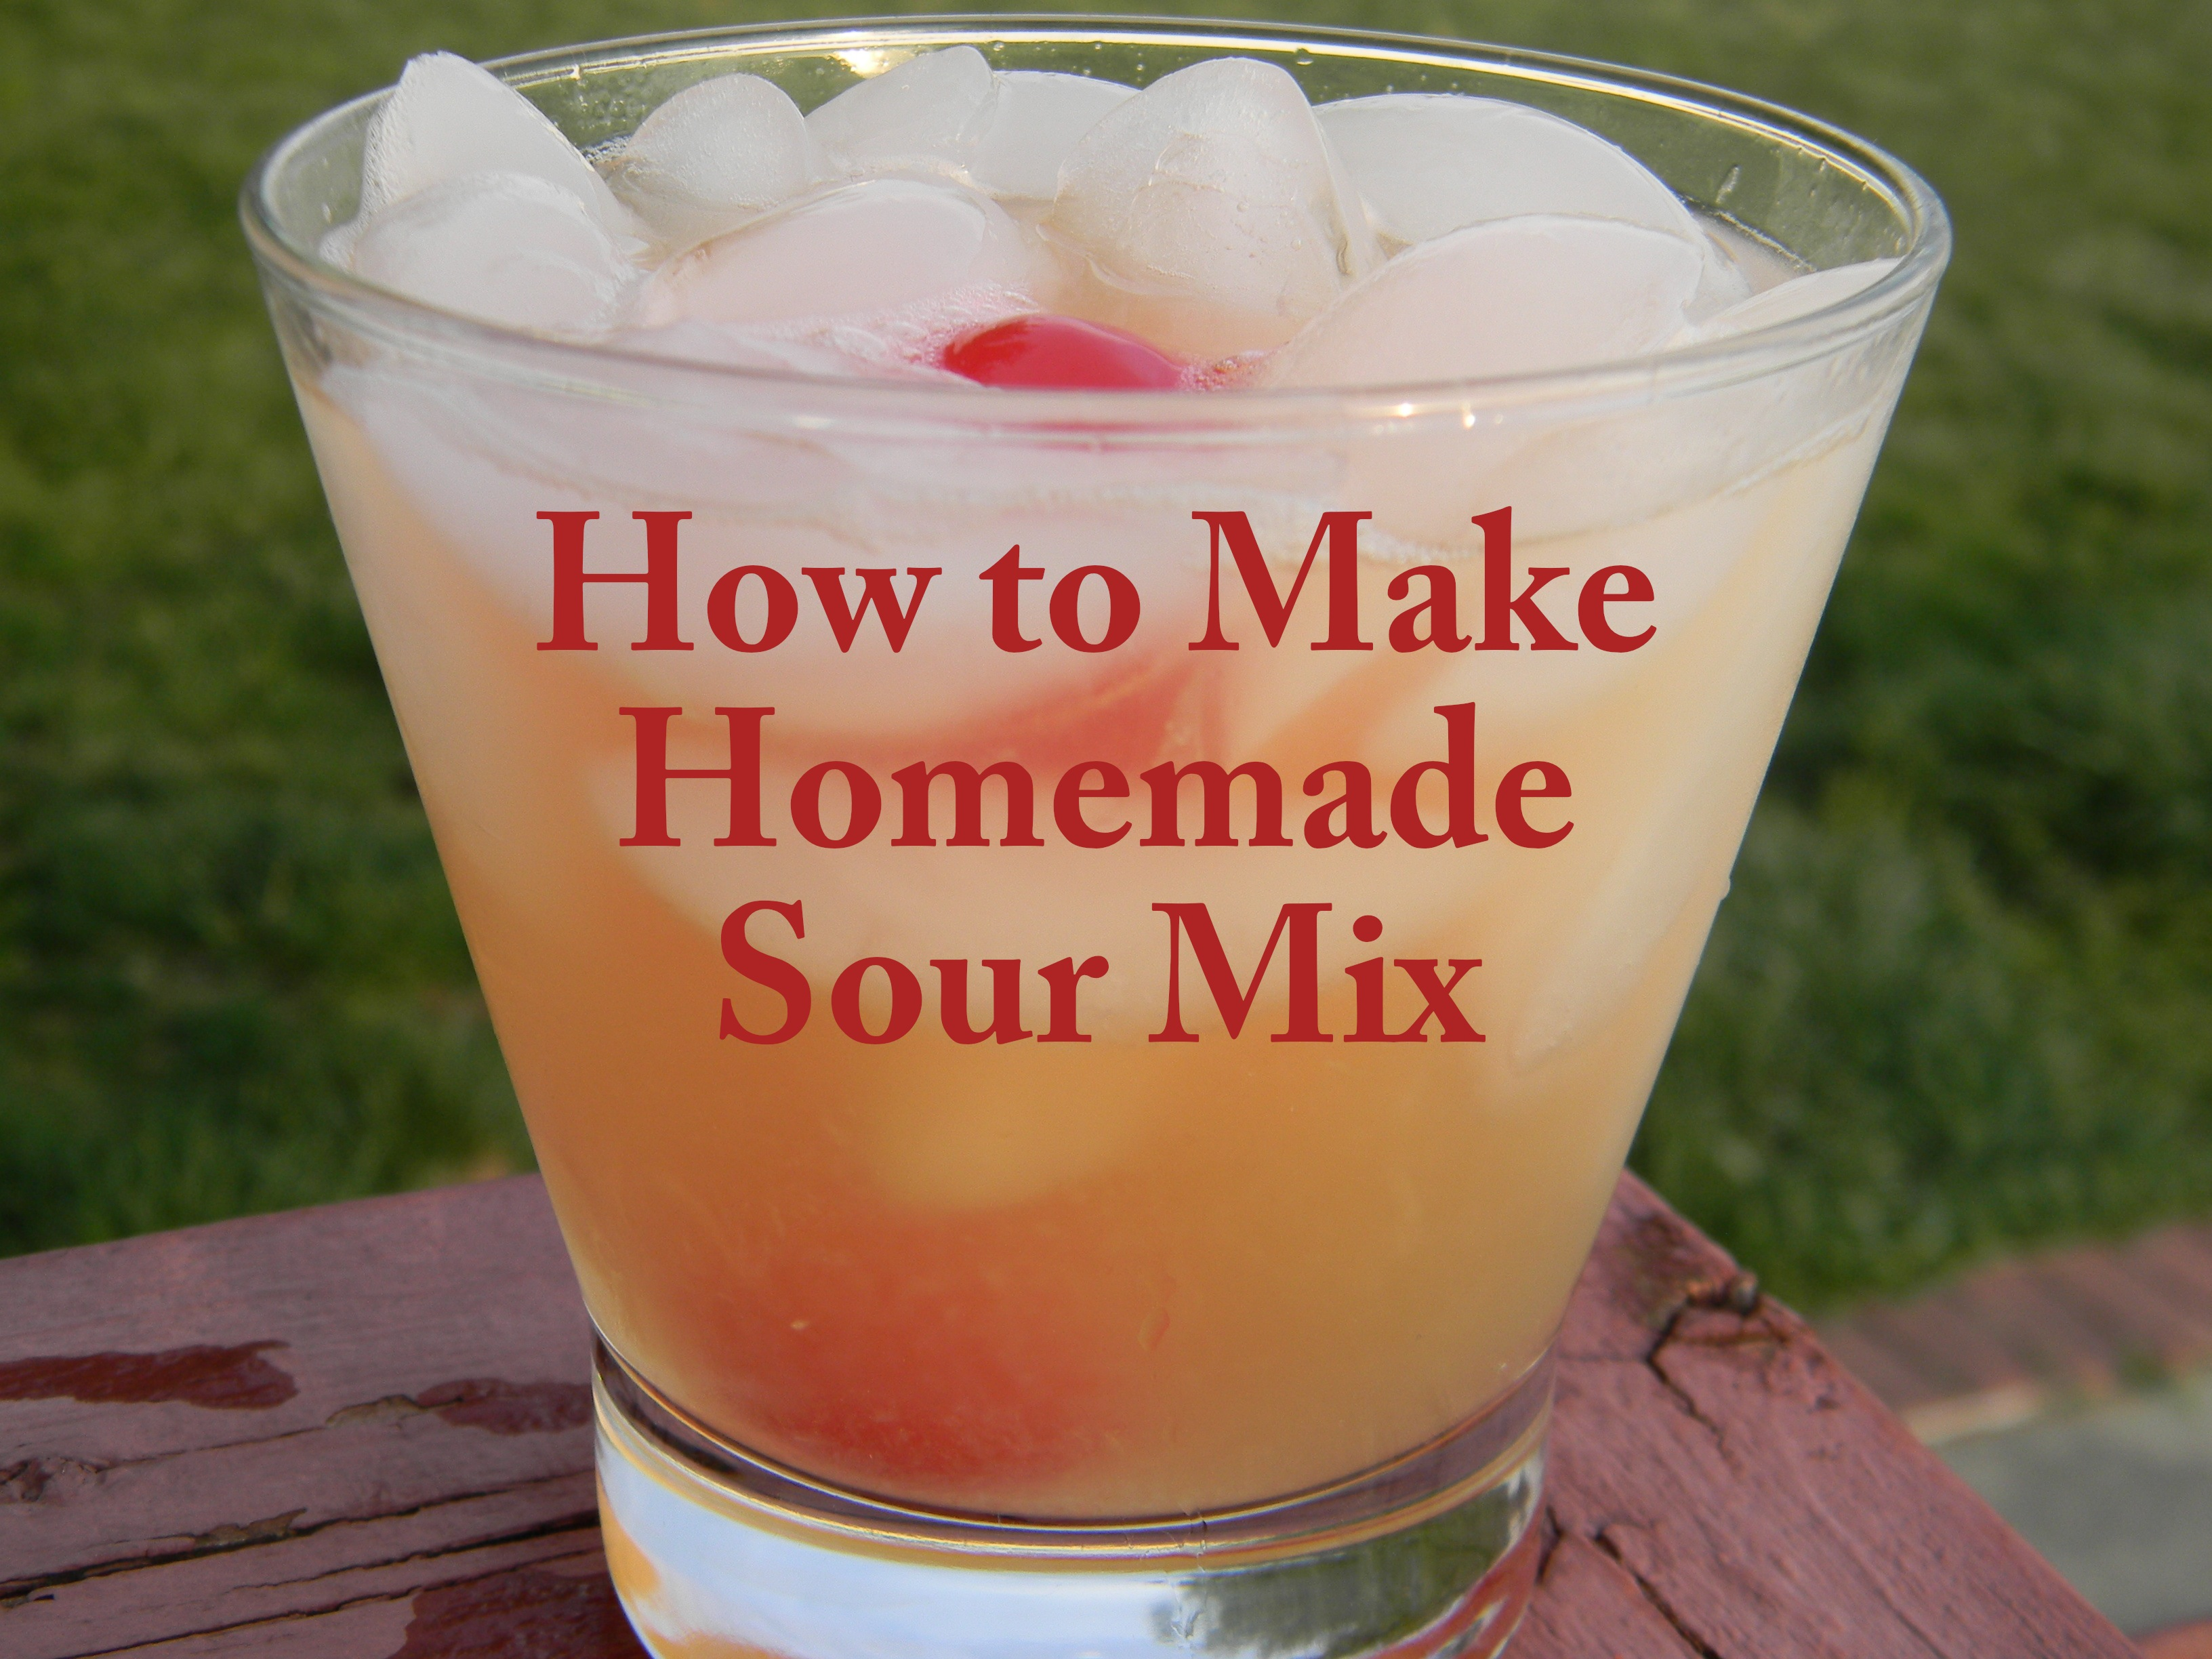 How to Make Homemade Sour Mix - Giggles, Gobbles and Gulps